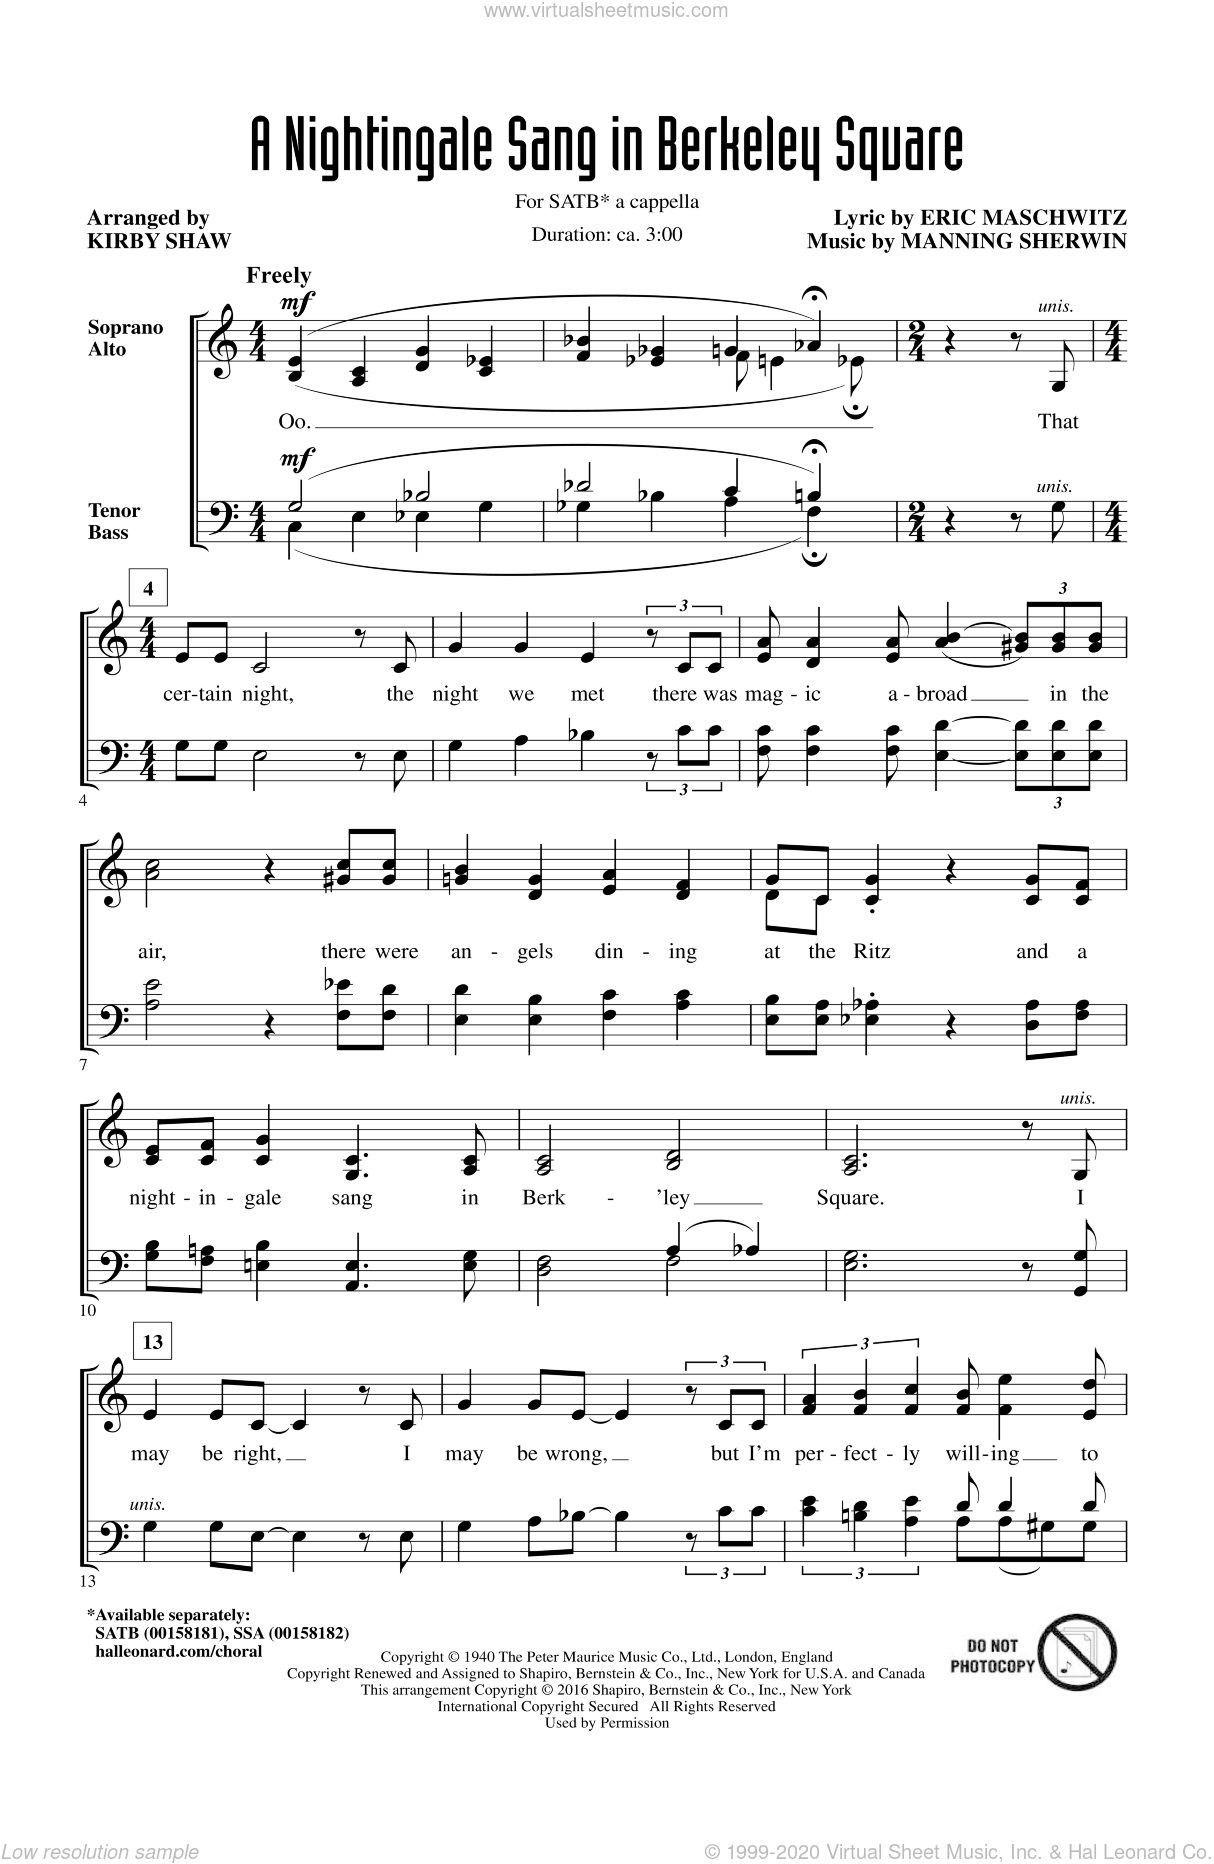 A Nightingale Sang In Berkeley Square sheet music for choir (SATB: soprano, alto, tenor, bass) by Kirby Shaw, Manhattan Transfer, Eric Maschwitz and Manning Sherwin, intermediate skill level